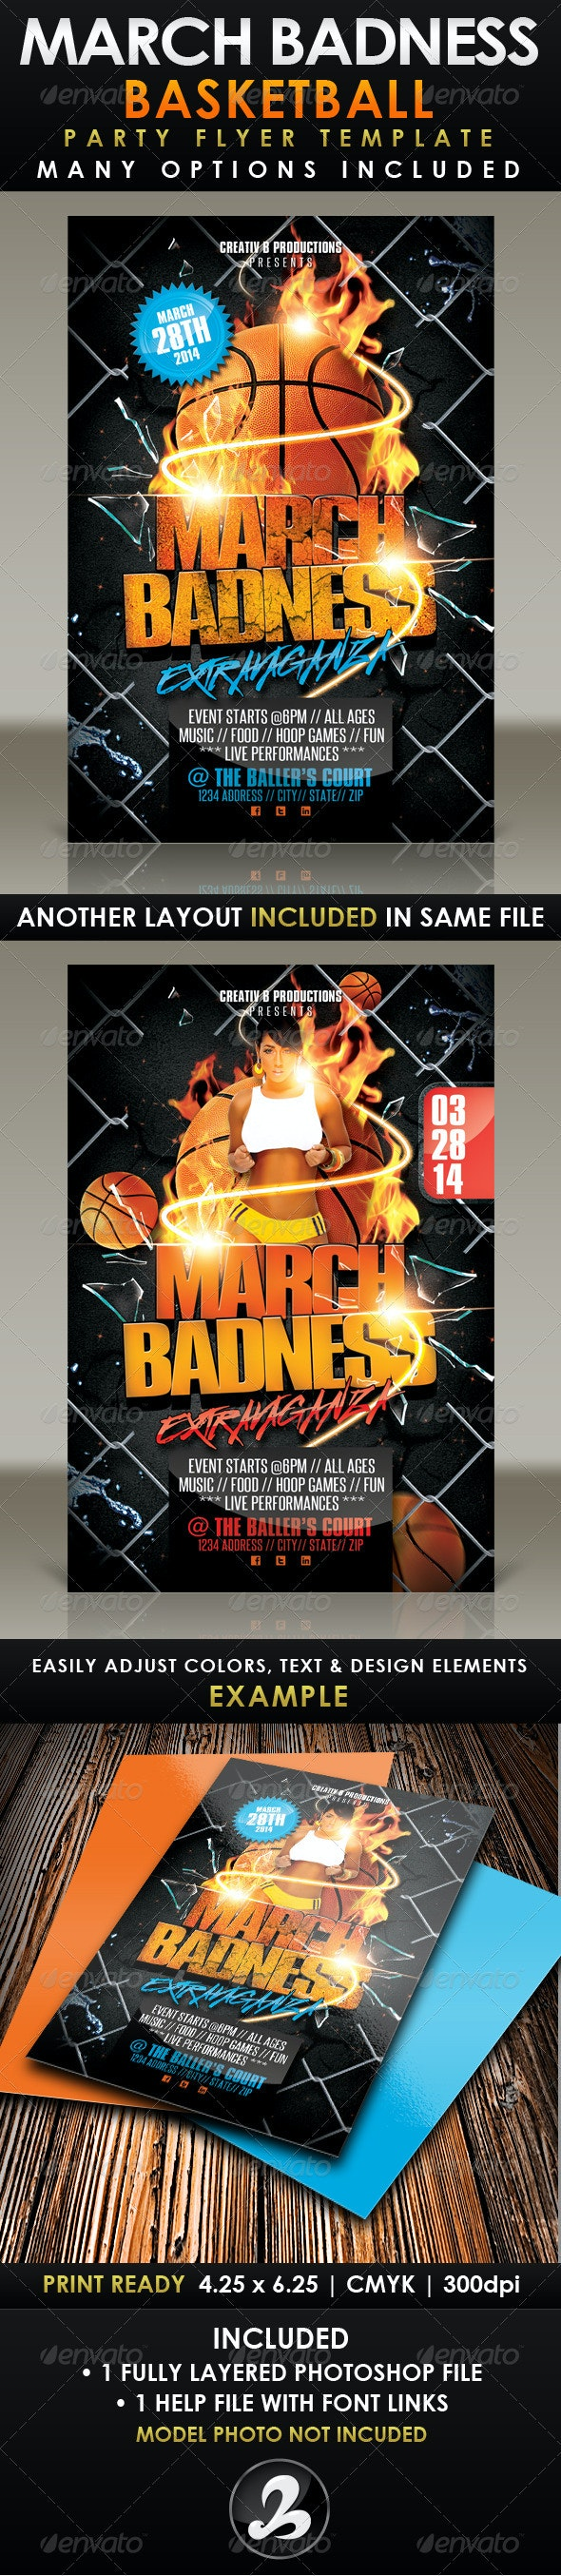 March Badness Basketball Party Flyer Template - Sports Events